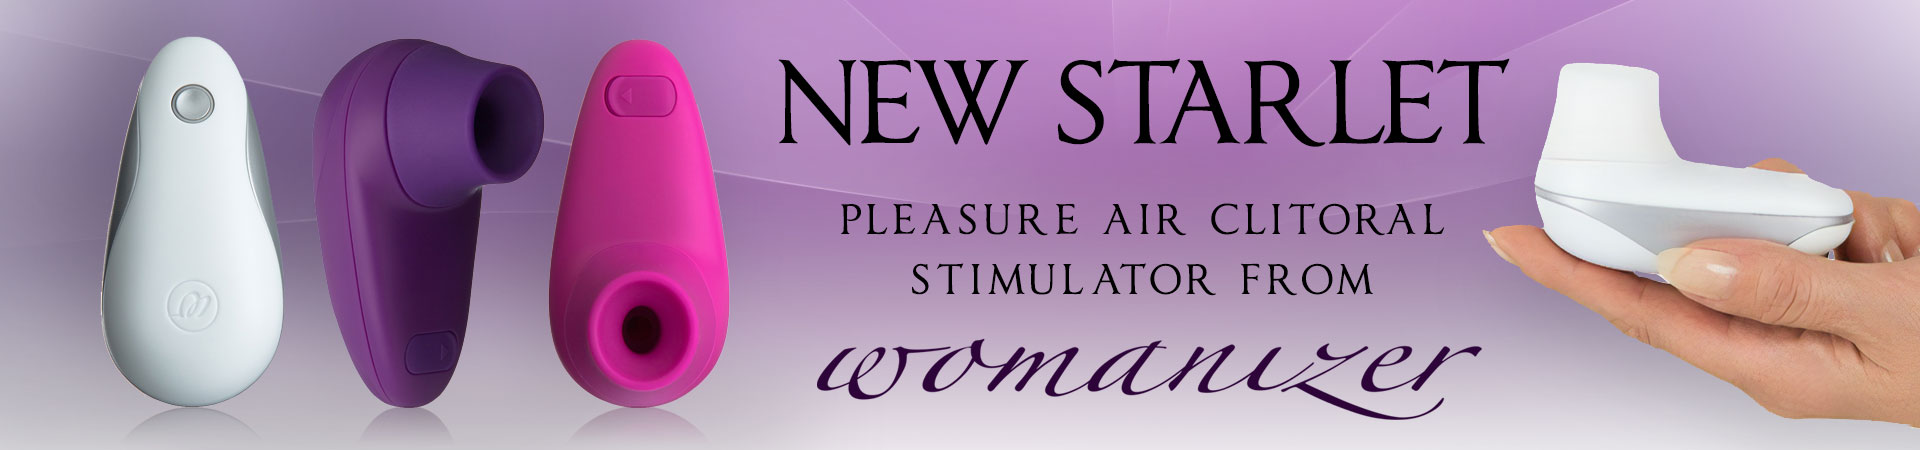 New Starlet From Womanizer!